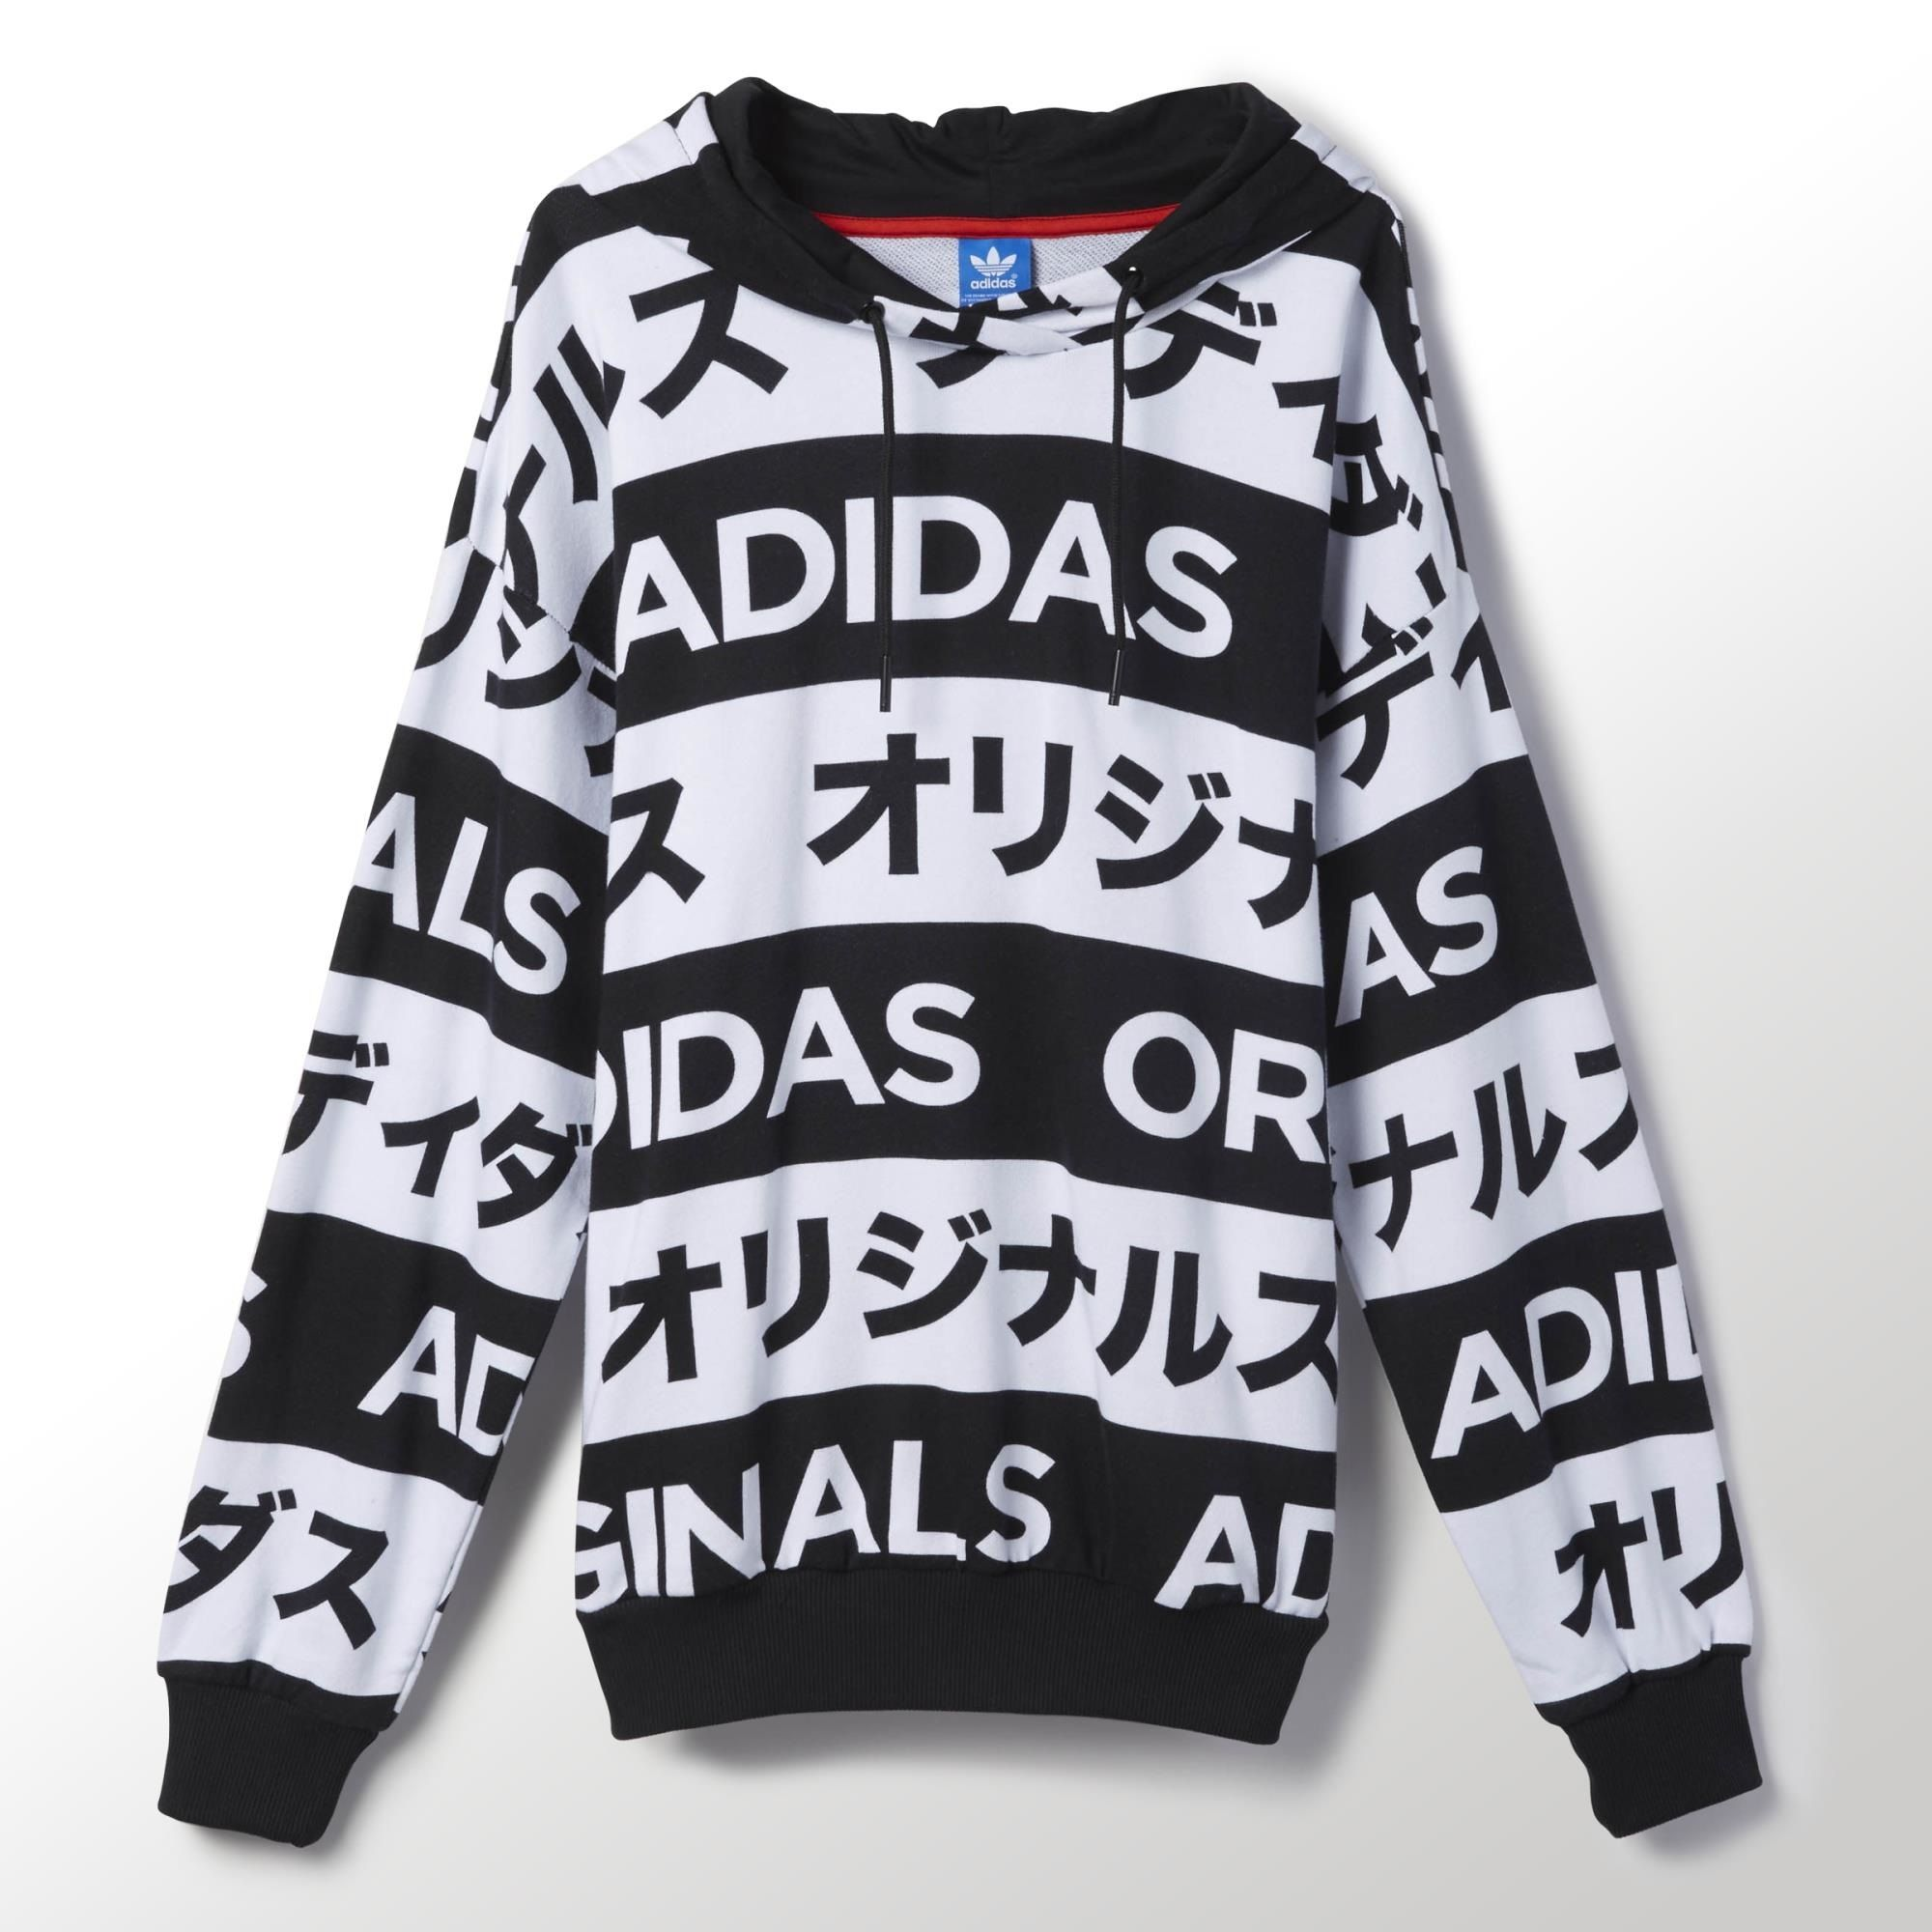 12af89f0f454 adidas Originals makes a statement in any language. Black and white bands  of Japanese katakana characters give bold graphic style to this women s  hoodie.